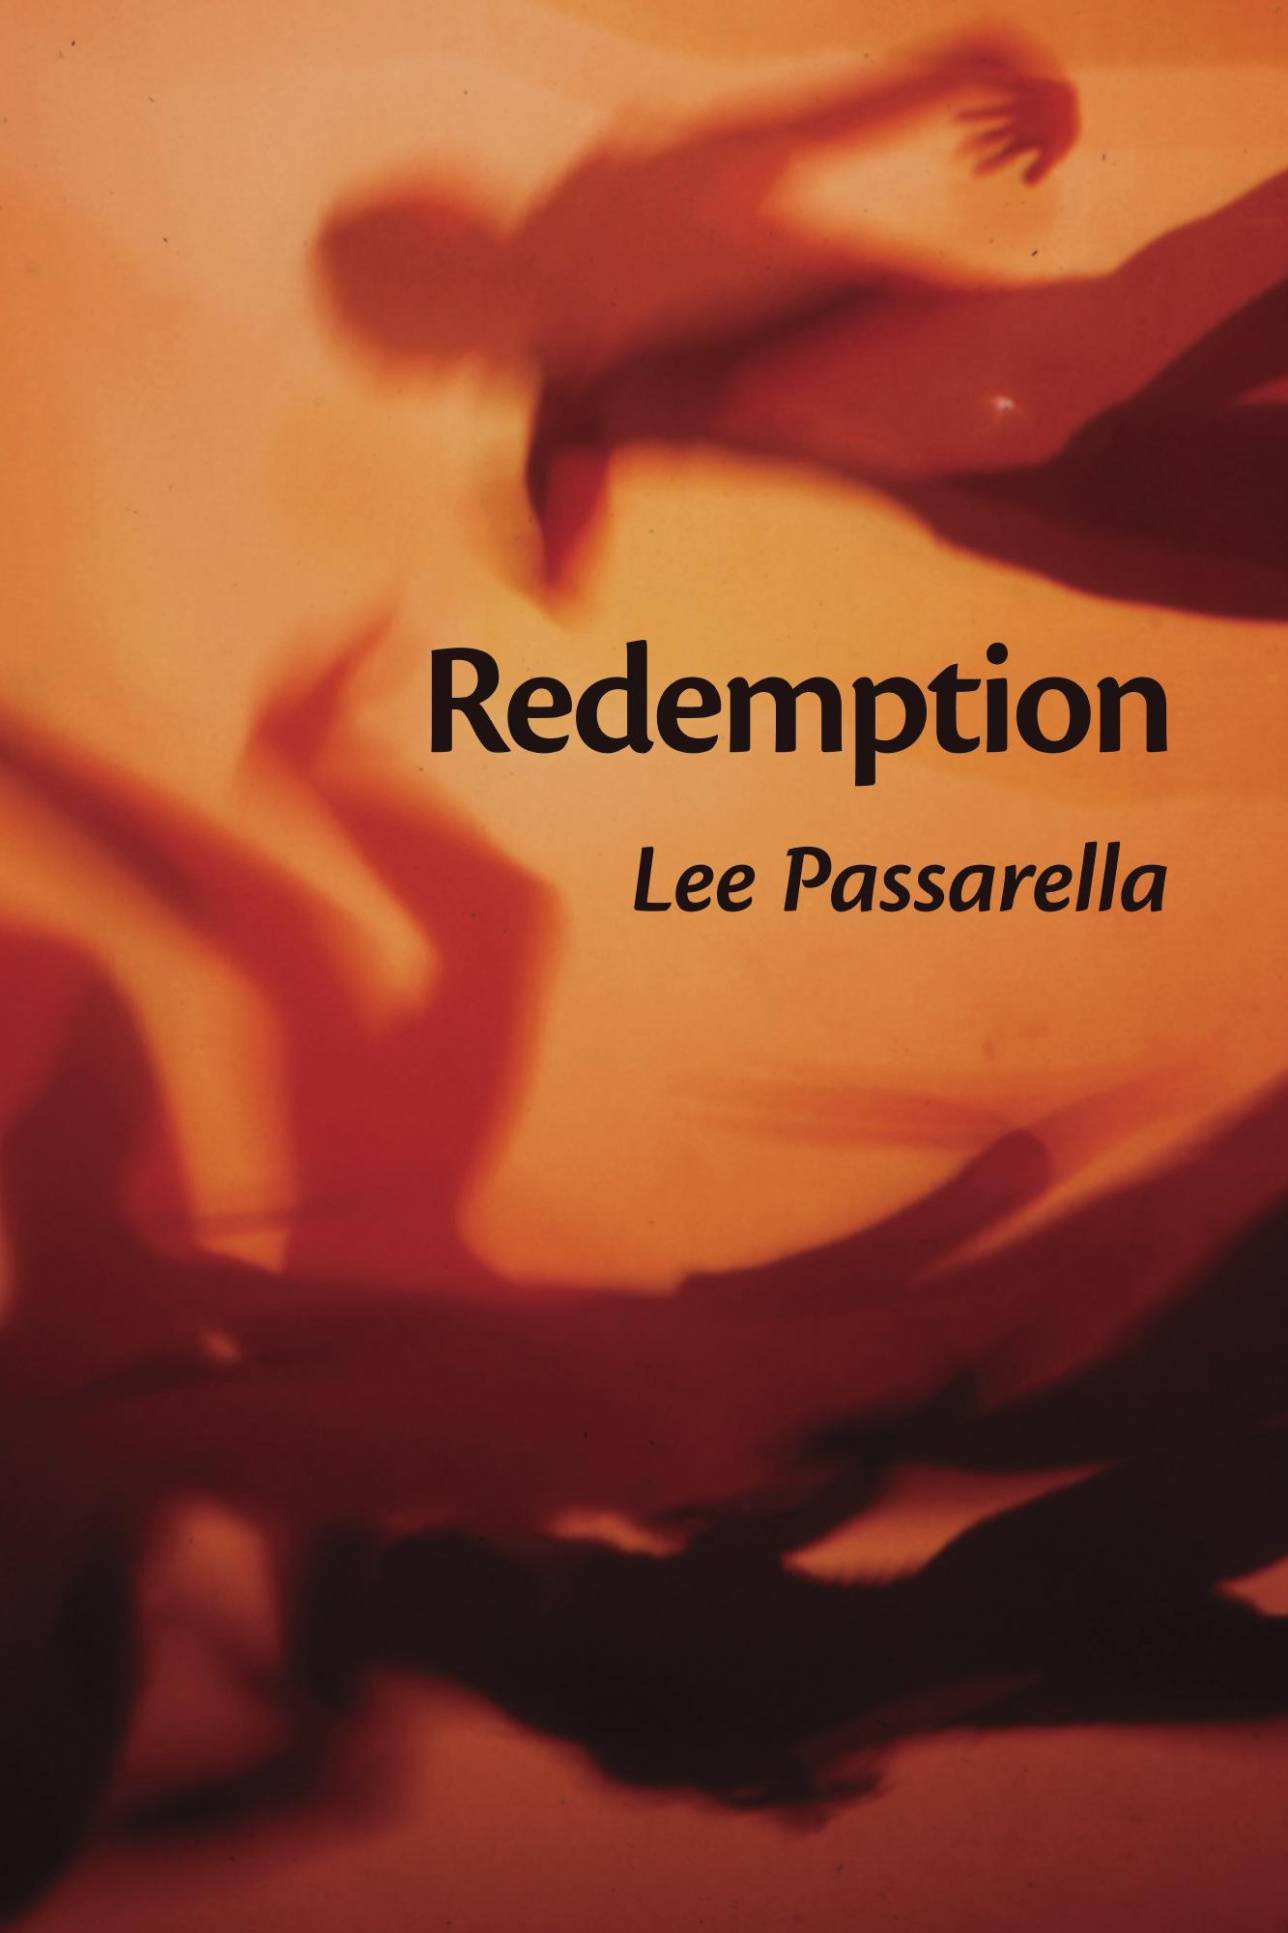 Redemption by Lee Passarella